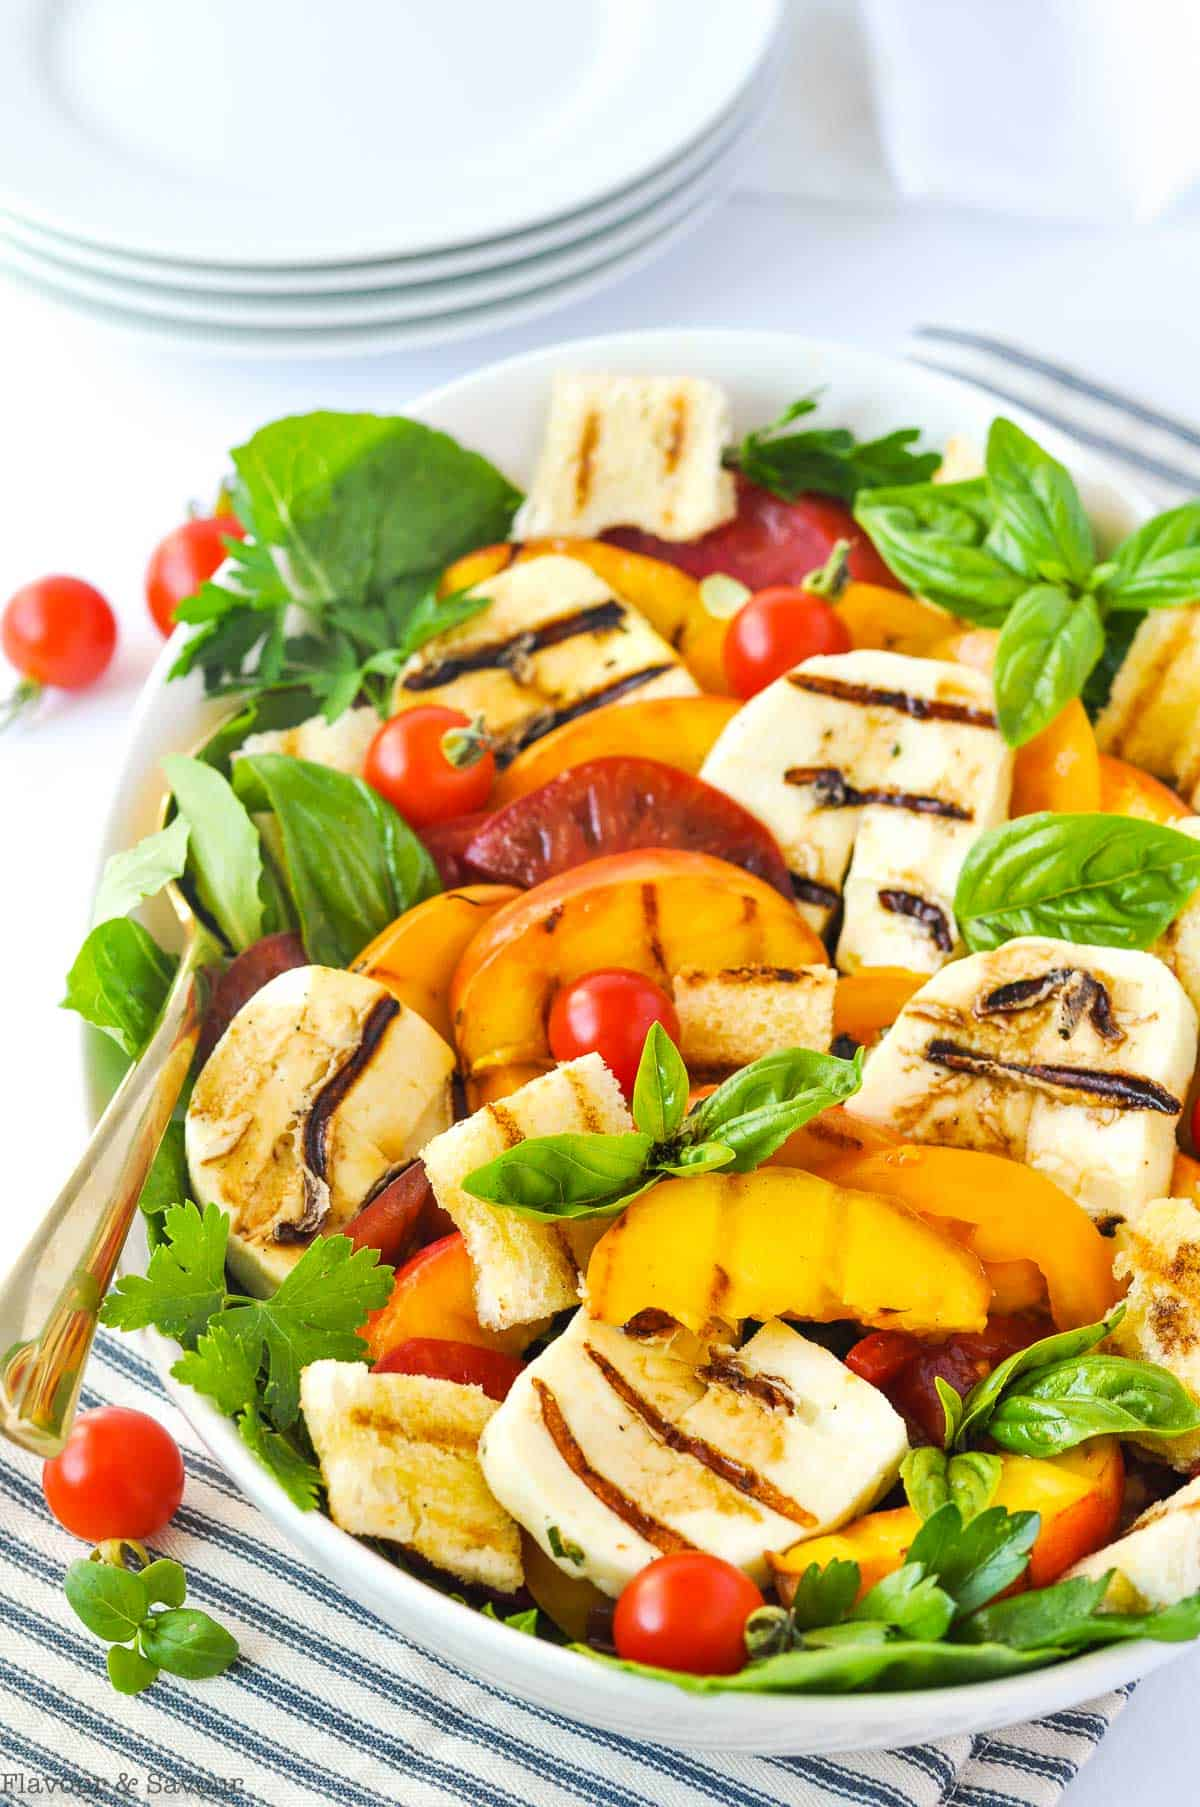 Grilled Halloumi Peach and Tomato Salad in a serving bowl with a stack of white plates